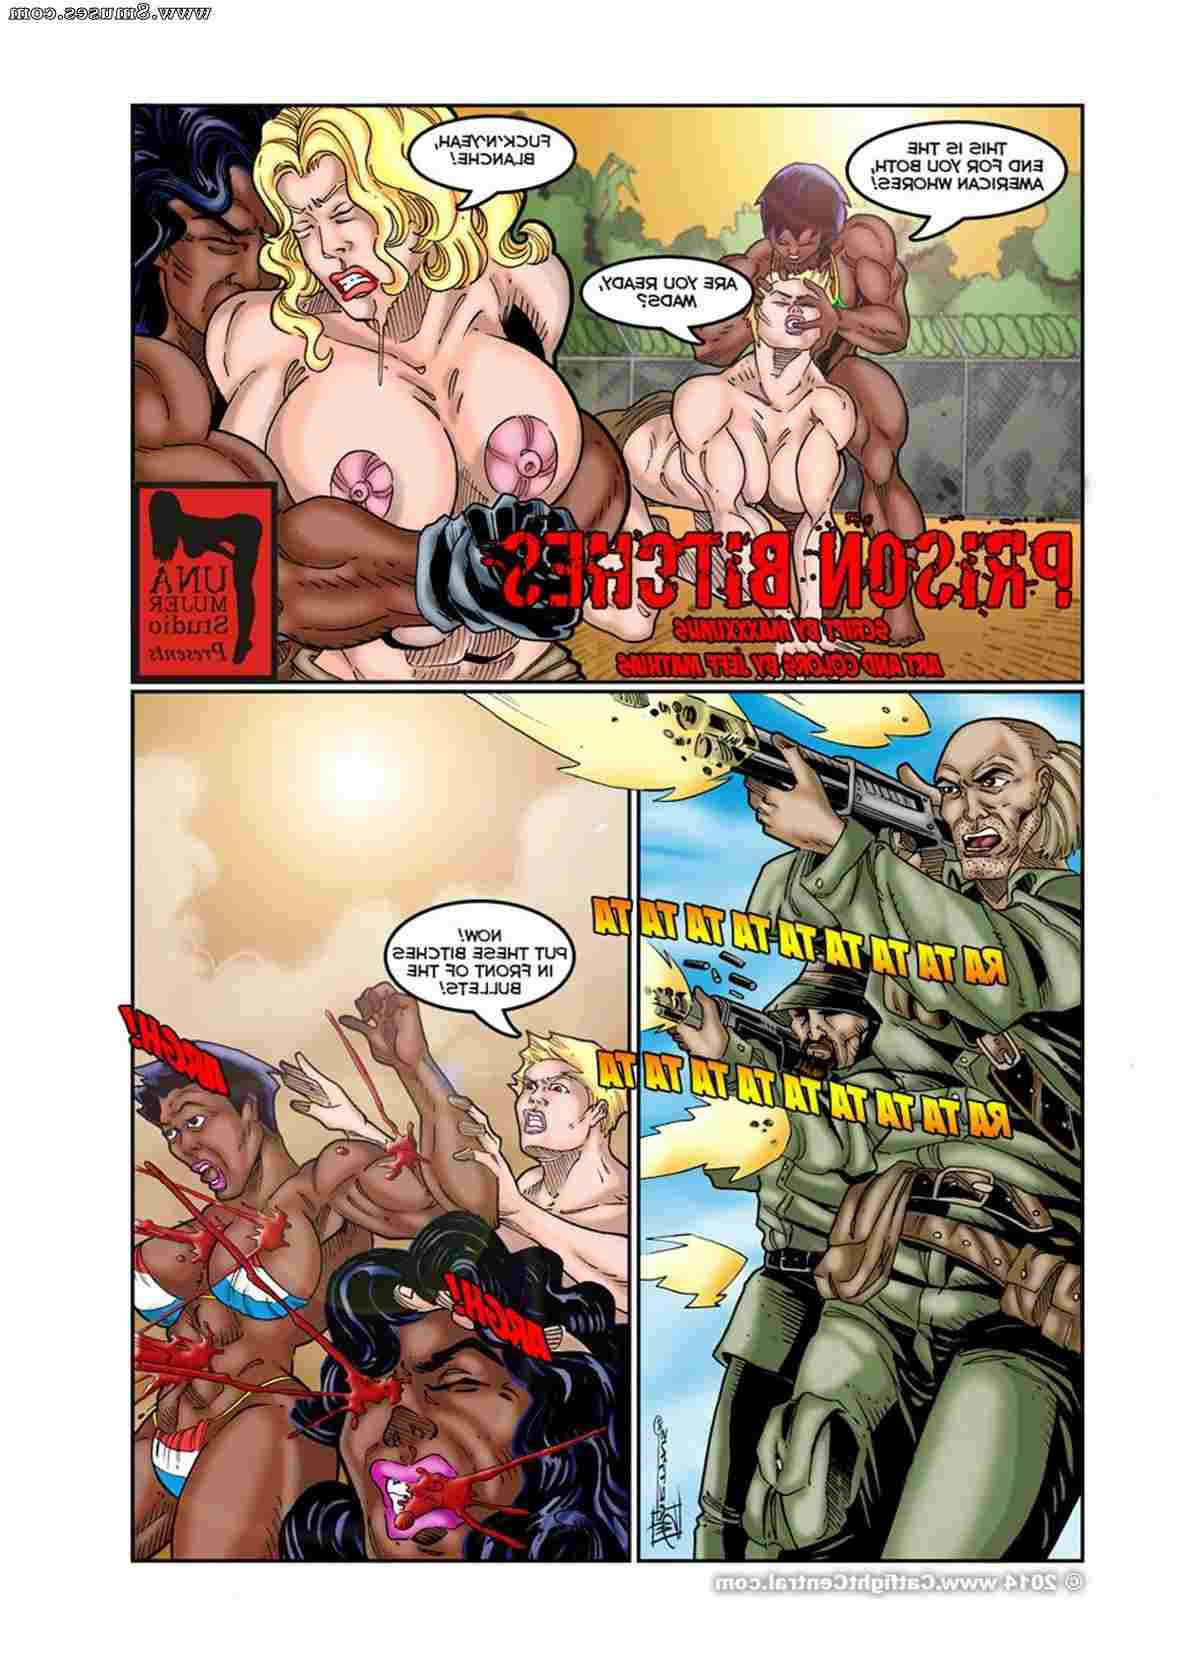 Central-Comics/Catfight-Central/Prison-Bitches Prison_Bitches__8muses_-_Sex_and_Porn_Comics_81.jpg